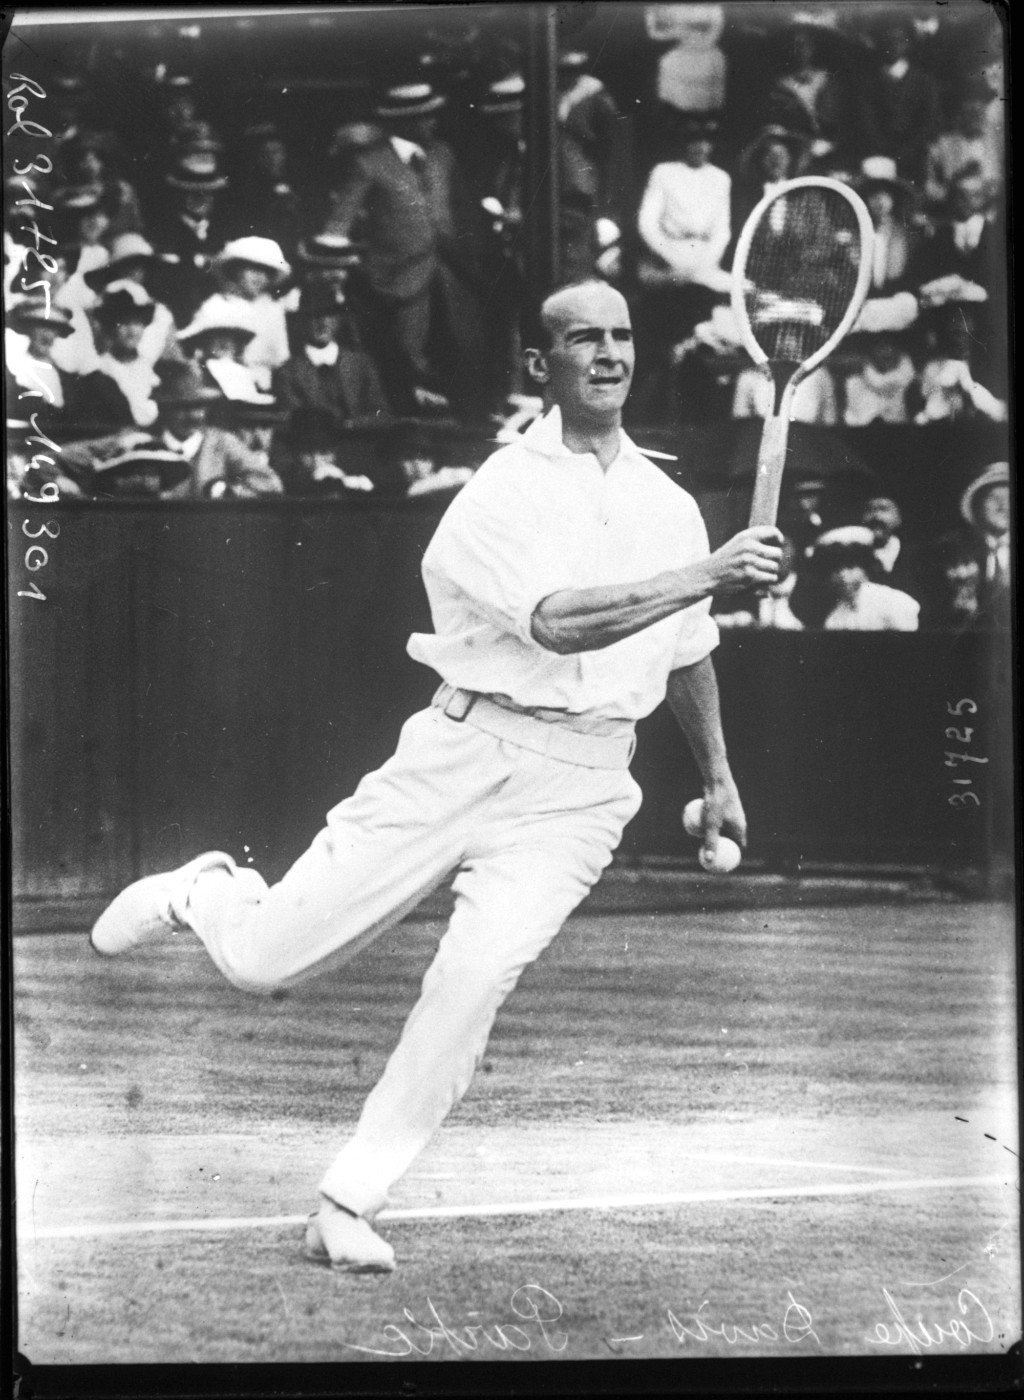 Davis Cup, Parke [player of the English team in the Davis Cup final against the American team at Wimbledon, 25-28 July 1913], Agence Rol. Agence photographique, Bibliothèque Nationale de France, Public Domain Mark